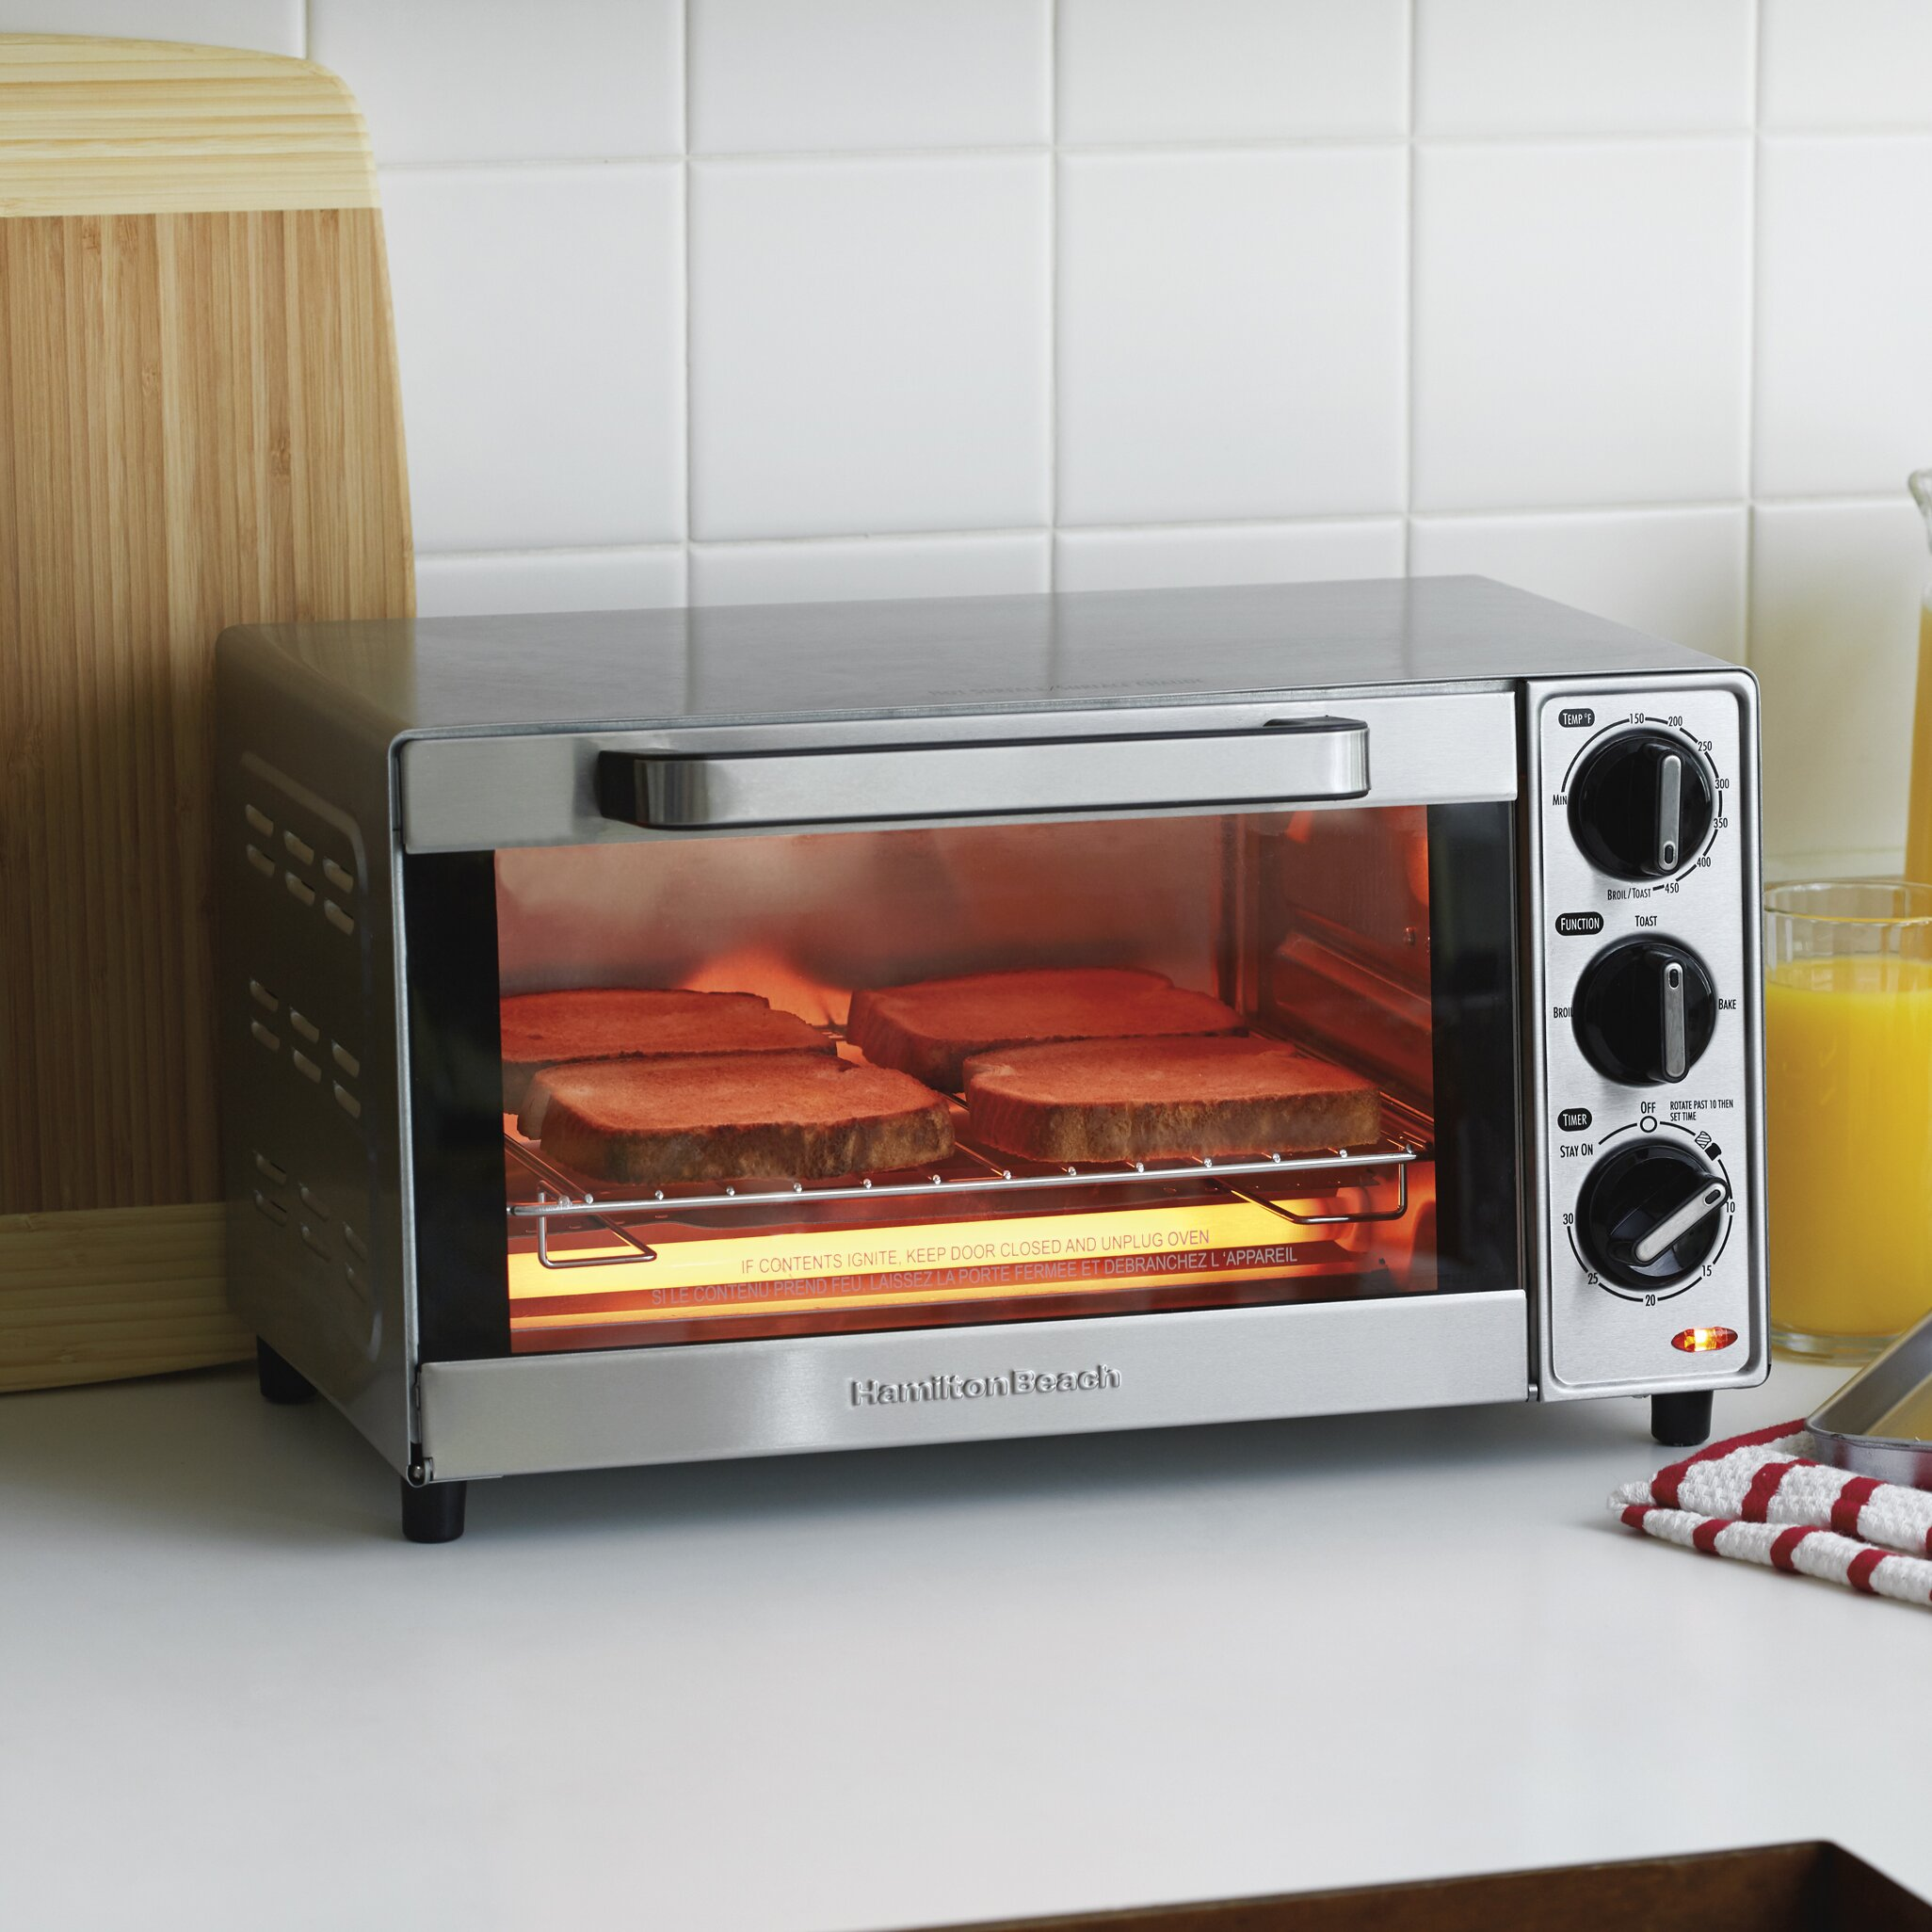 Hamilton Beach 4 Slice Toaster Oven Amp Reviews Wayfair